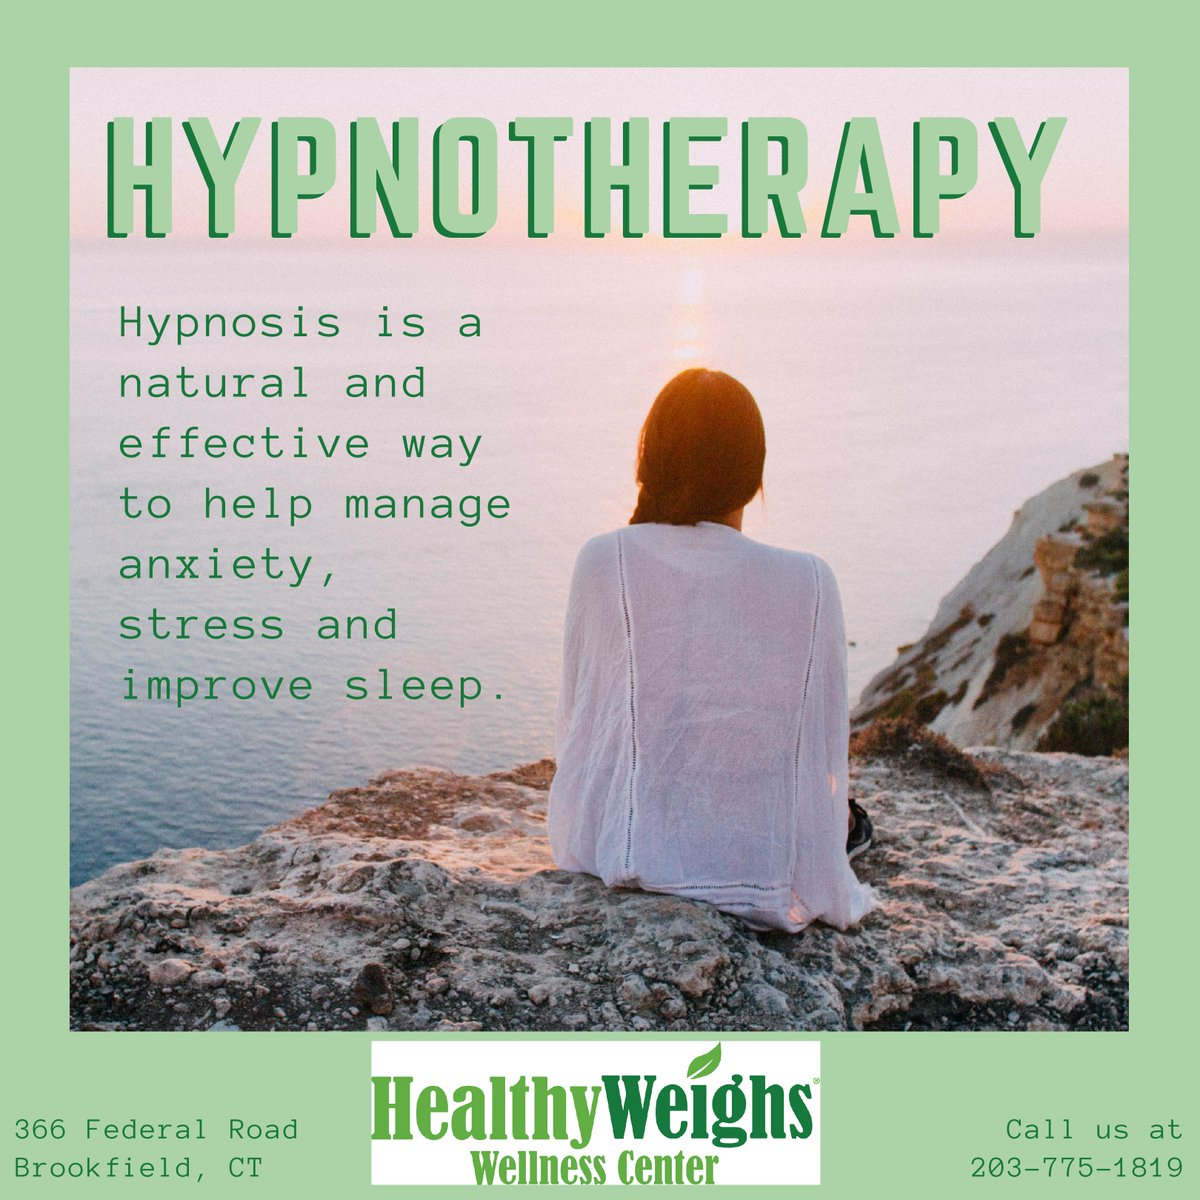 #hypnosis #hypnosisworks #hypnosissaturdays #hypnotherapy #subconsiousmind #relaxedstate #badhabits #sleepdisorders #quitsmoking #phobia #meditation #love #mindfulness #peace #spirituality #life #healing #zen #consciousness #energy #healthyweighswellnesscenter